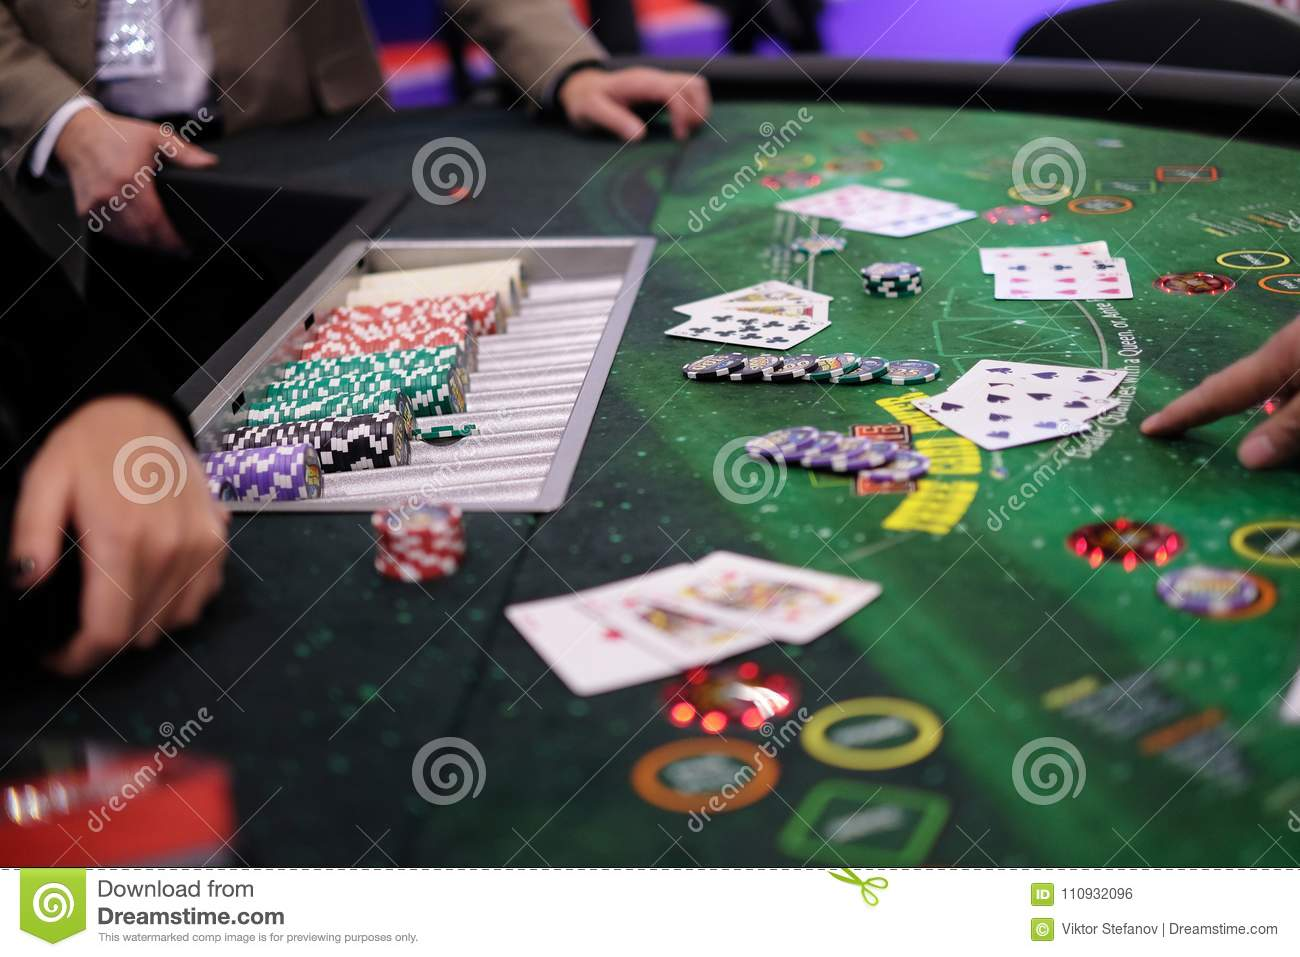 Classic Casino Blackjack Table With Chips And Cards Stock Photo Image Of Background Black 110932096